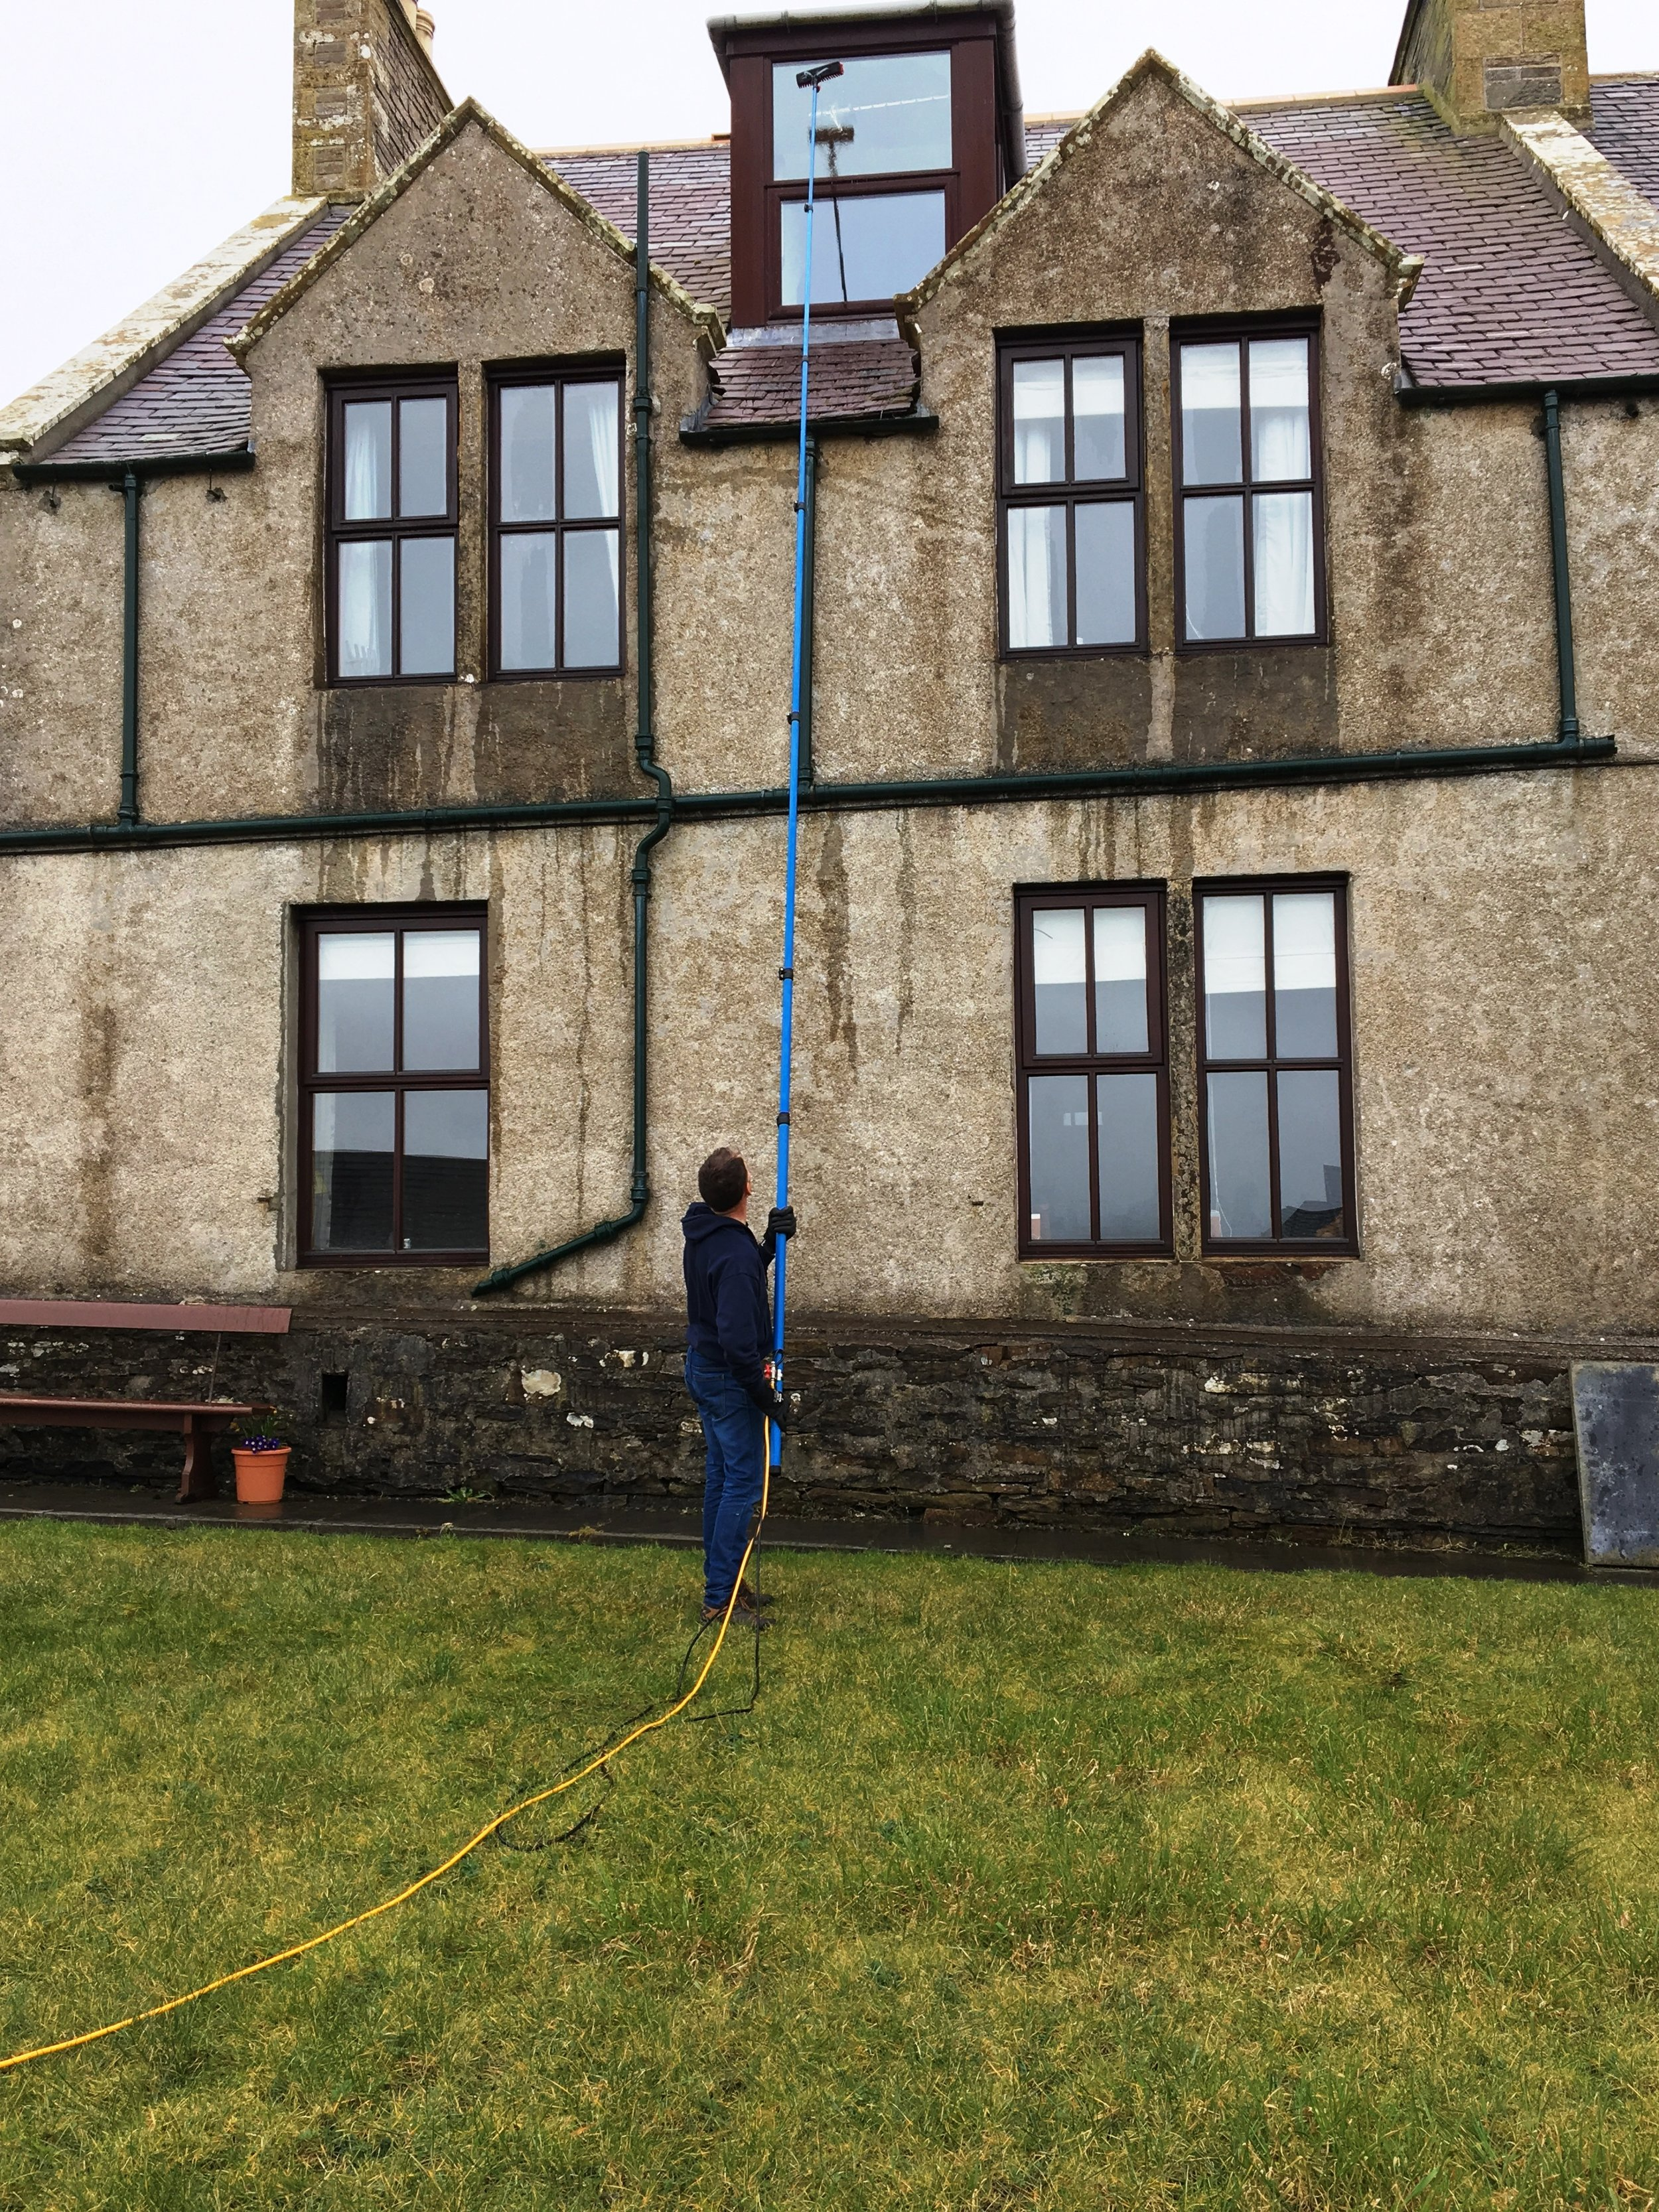 With our window cleaning system, we have the capabilities to clean up to 38 feet with ease.